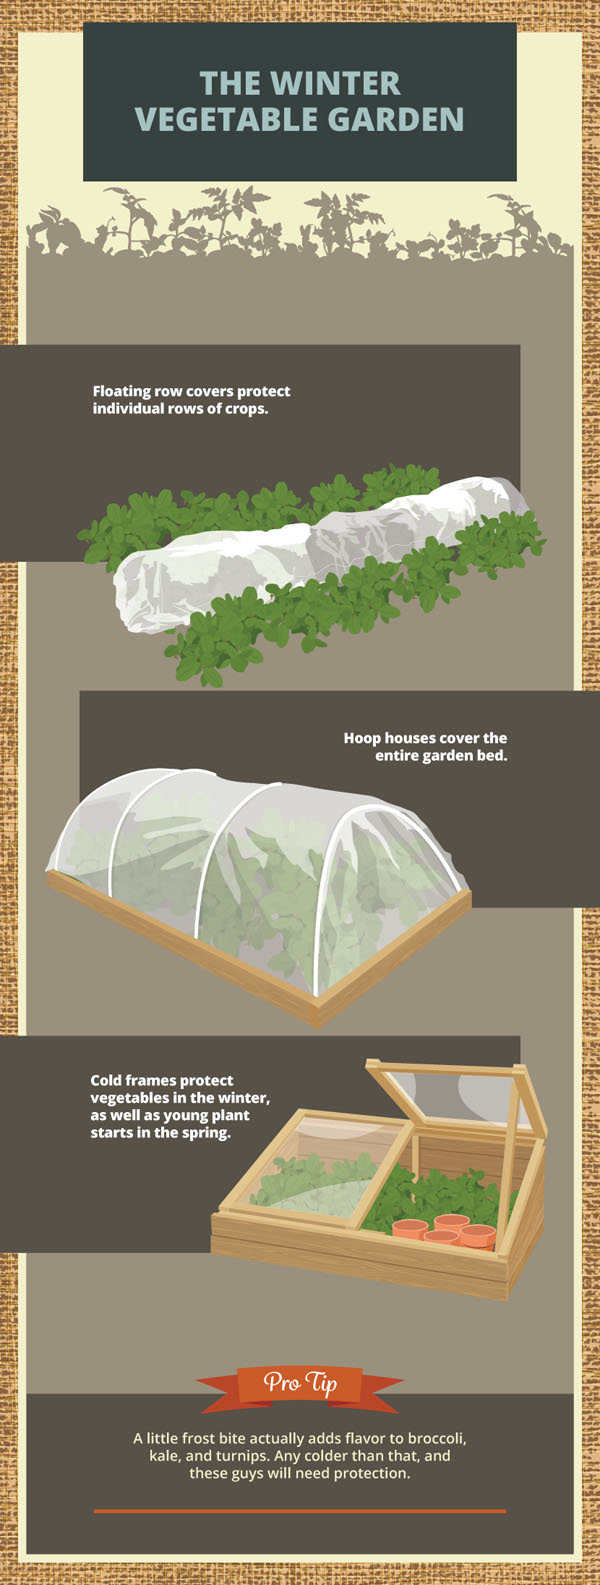 Preparing Your Garden For Winter -- Story image 3